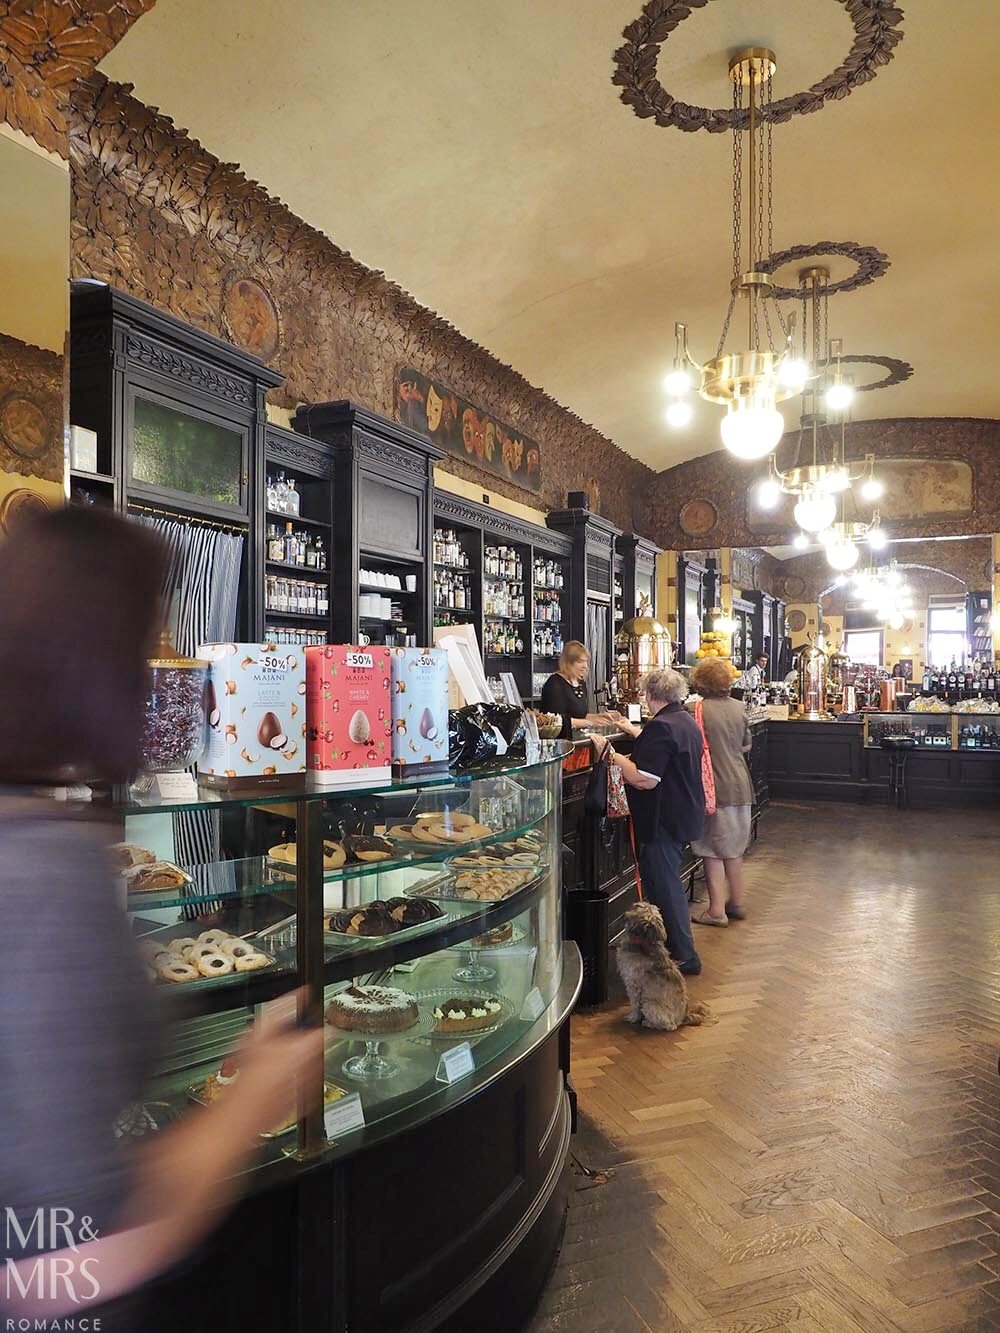 Trieste guide - Caffe San Marco